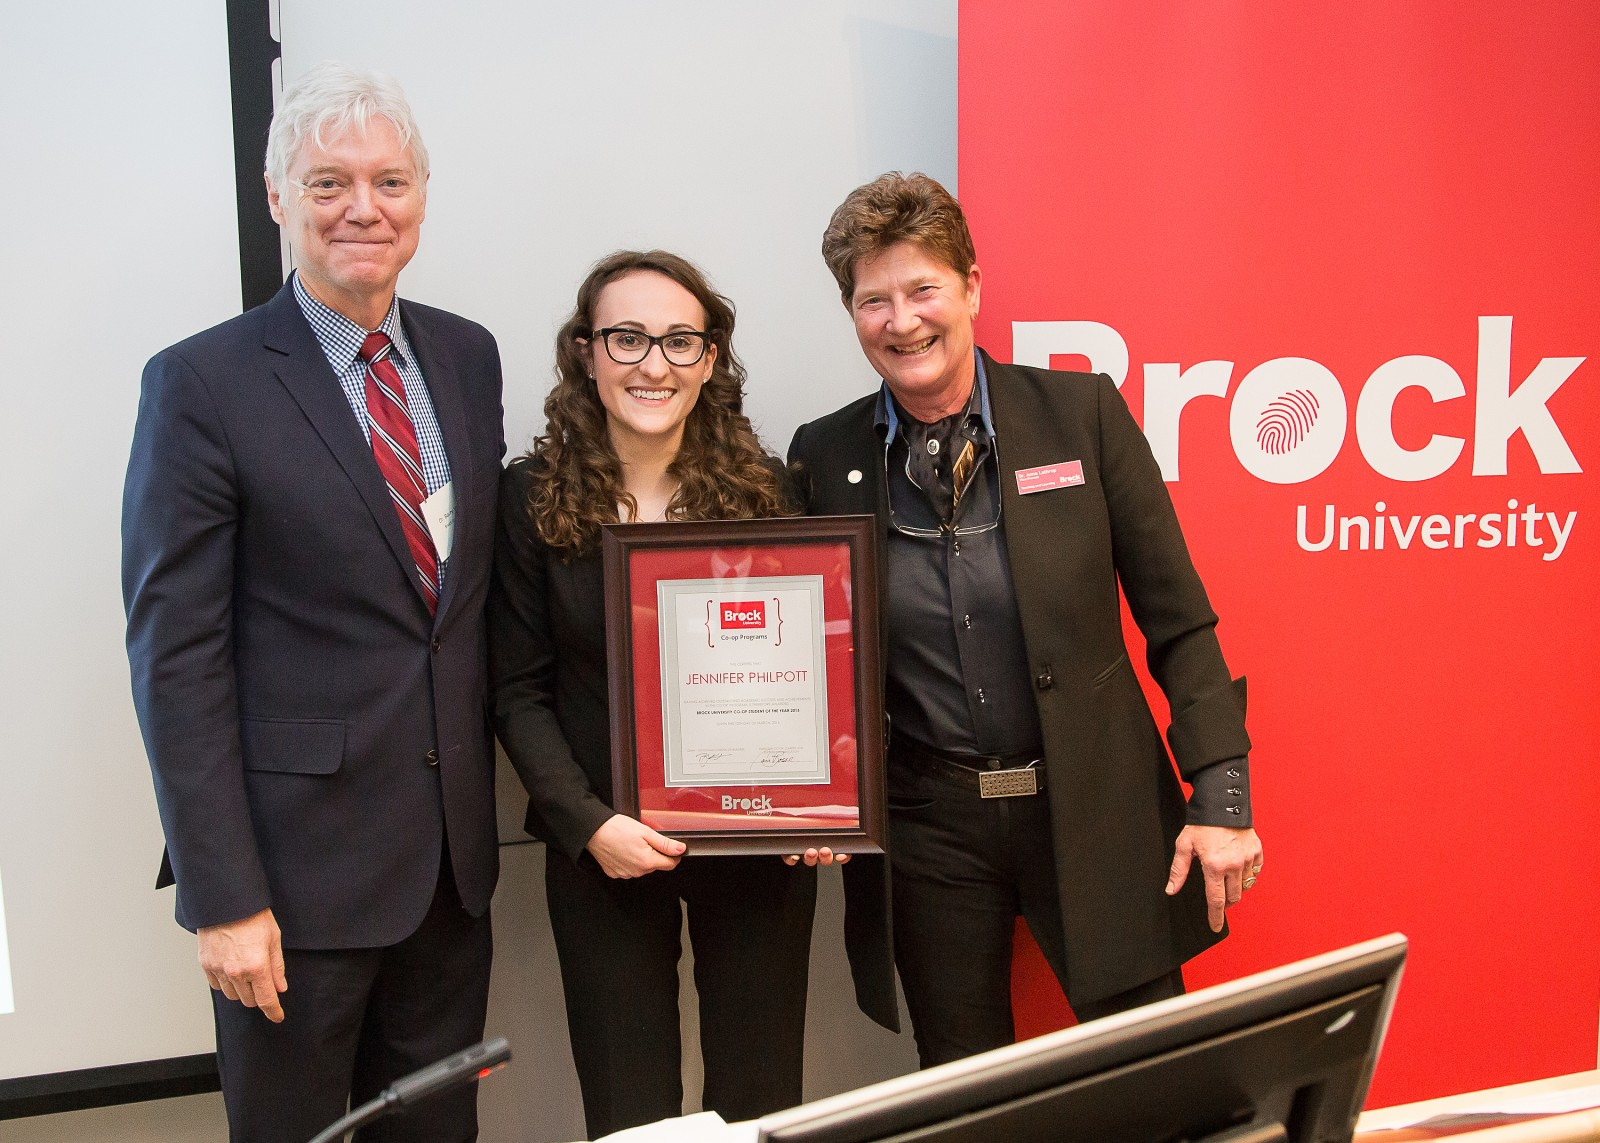 Jennifer Philpott, middle, received the Co-op Student of the Year Award for 2015 from Interim Dean of the Goodman School of Business Barry Wright and Vice-Provost of Teaching and Learning Anna Lathrop.